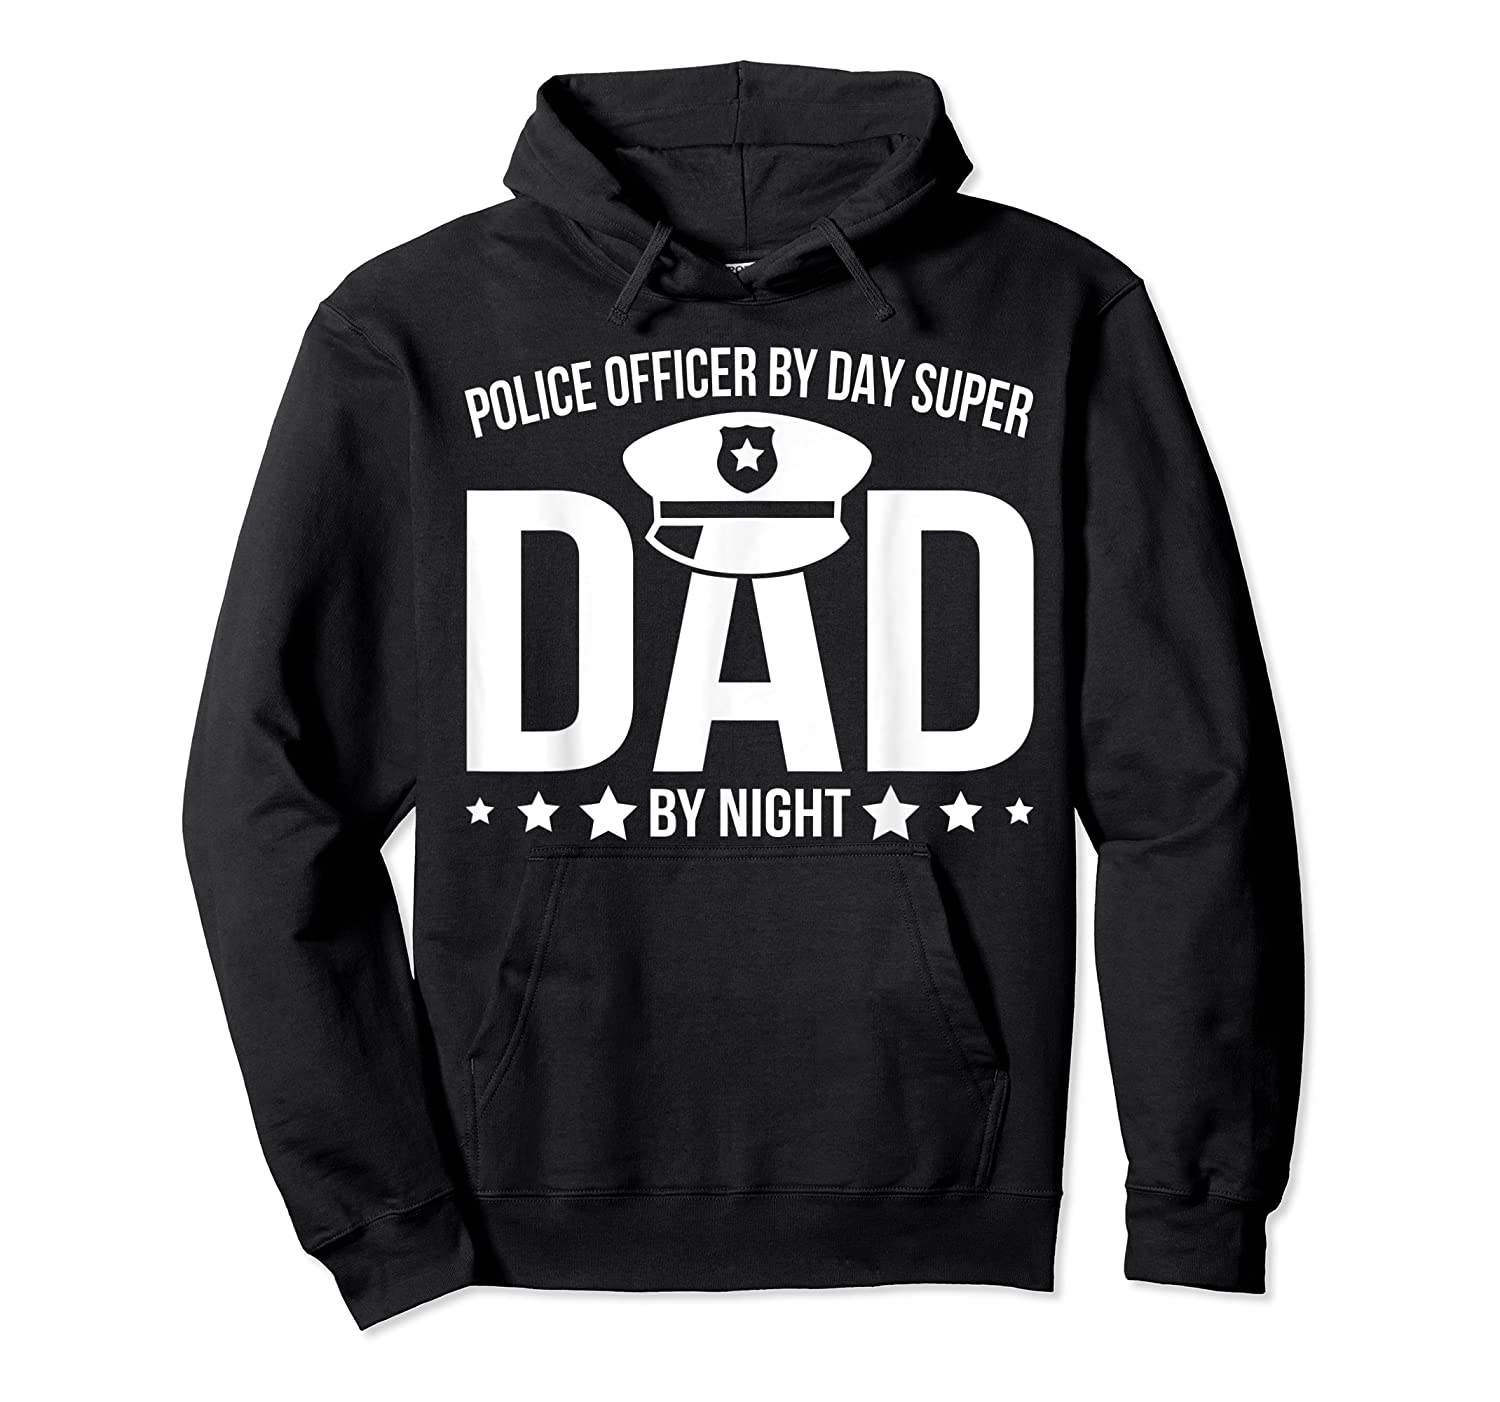 Police Officer By Day Super Dad By Night Father's Day Shirts Unisex Pullover Hoodie